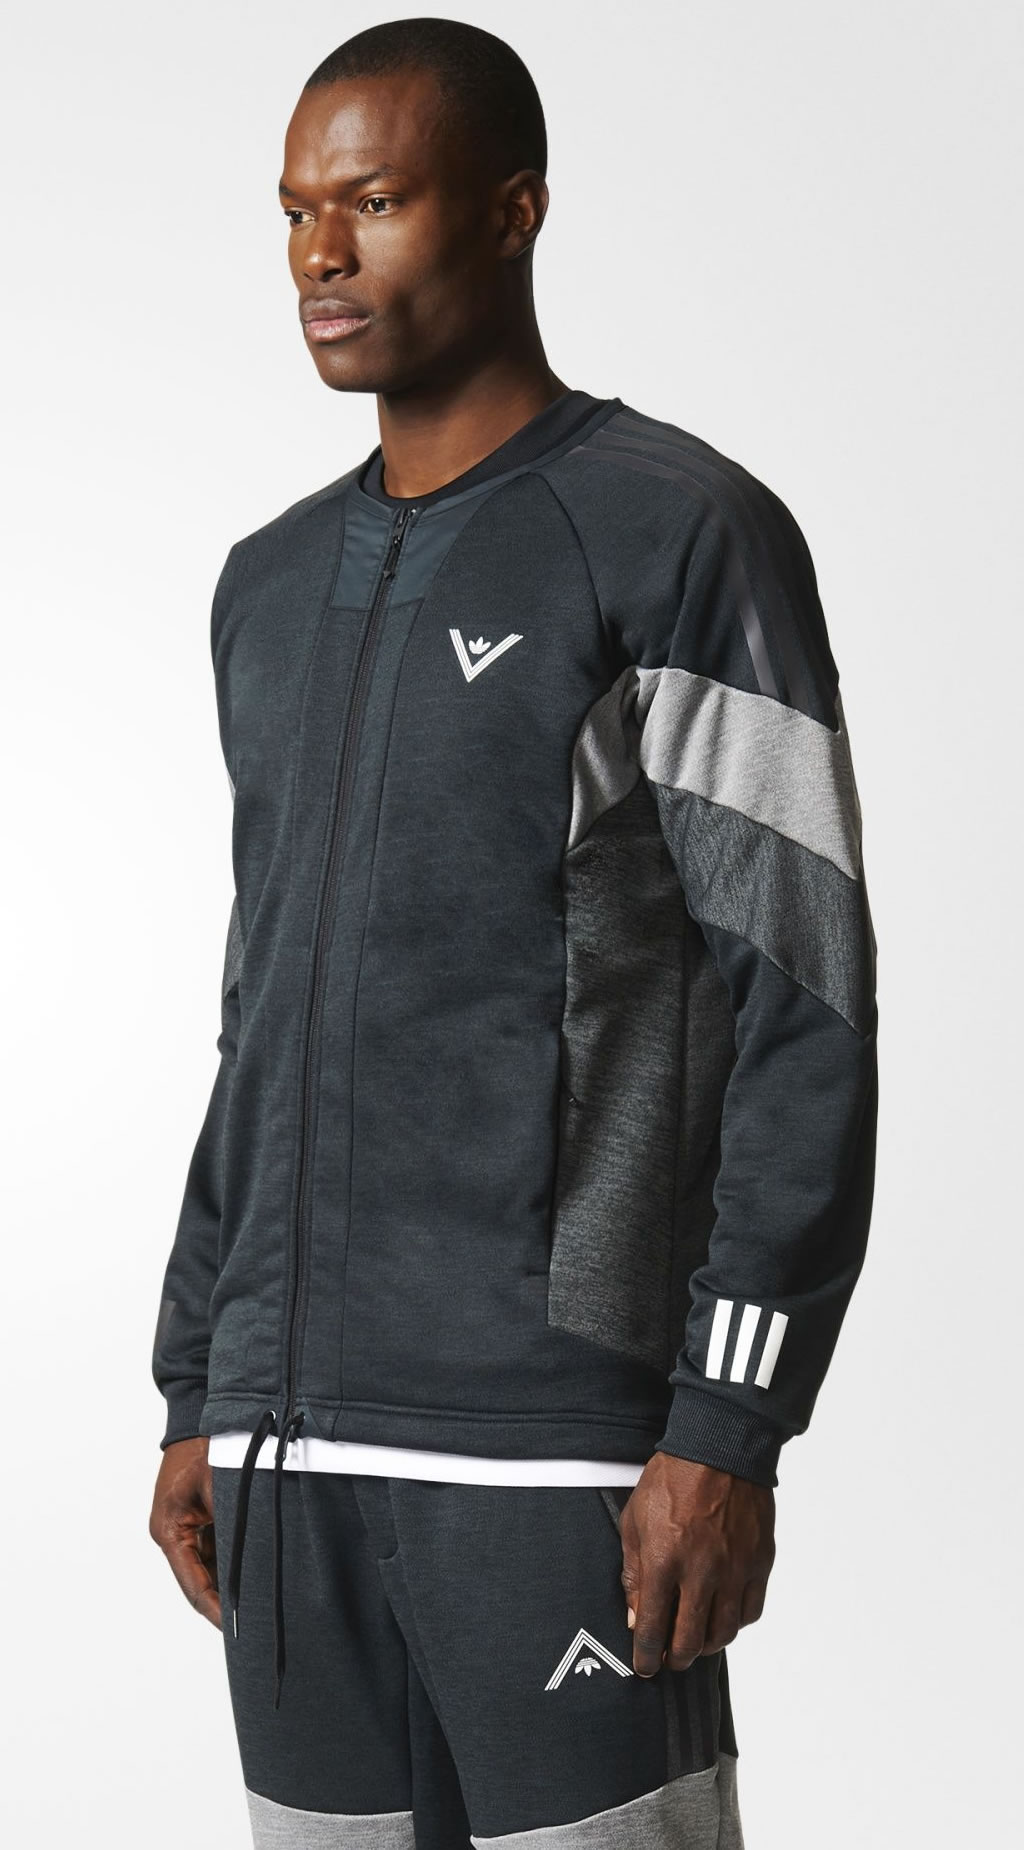 Challenger Track Jacket By Adidas x White Mountaineering